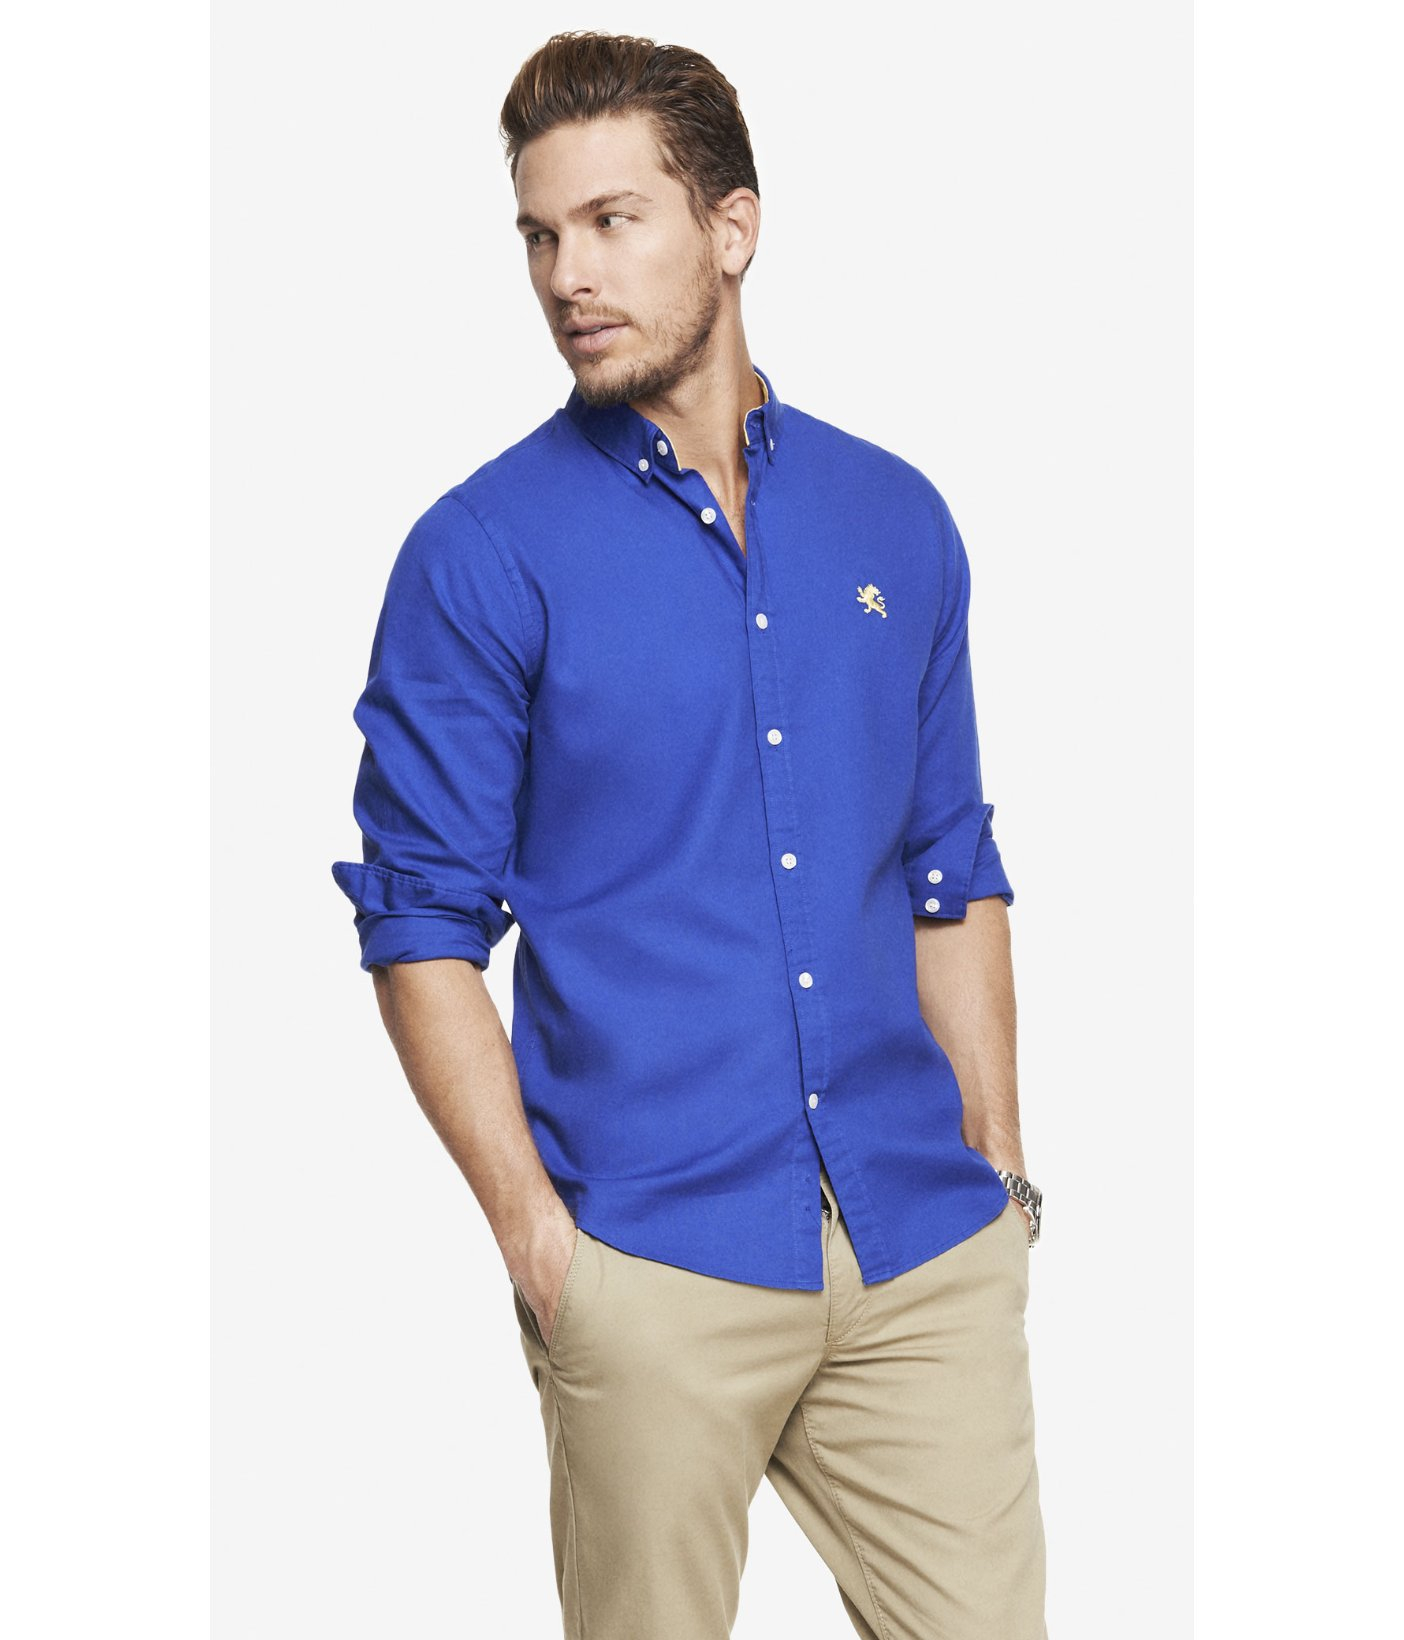 A light shirt made from a pure cotton pinpoint Oxford fabric and cut for a closer but unrestrictive fit. The yoke of the shirt features a middle seam down the middle of the collar, providing a unique look.